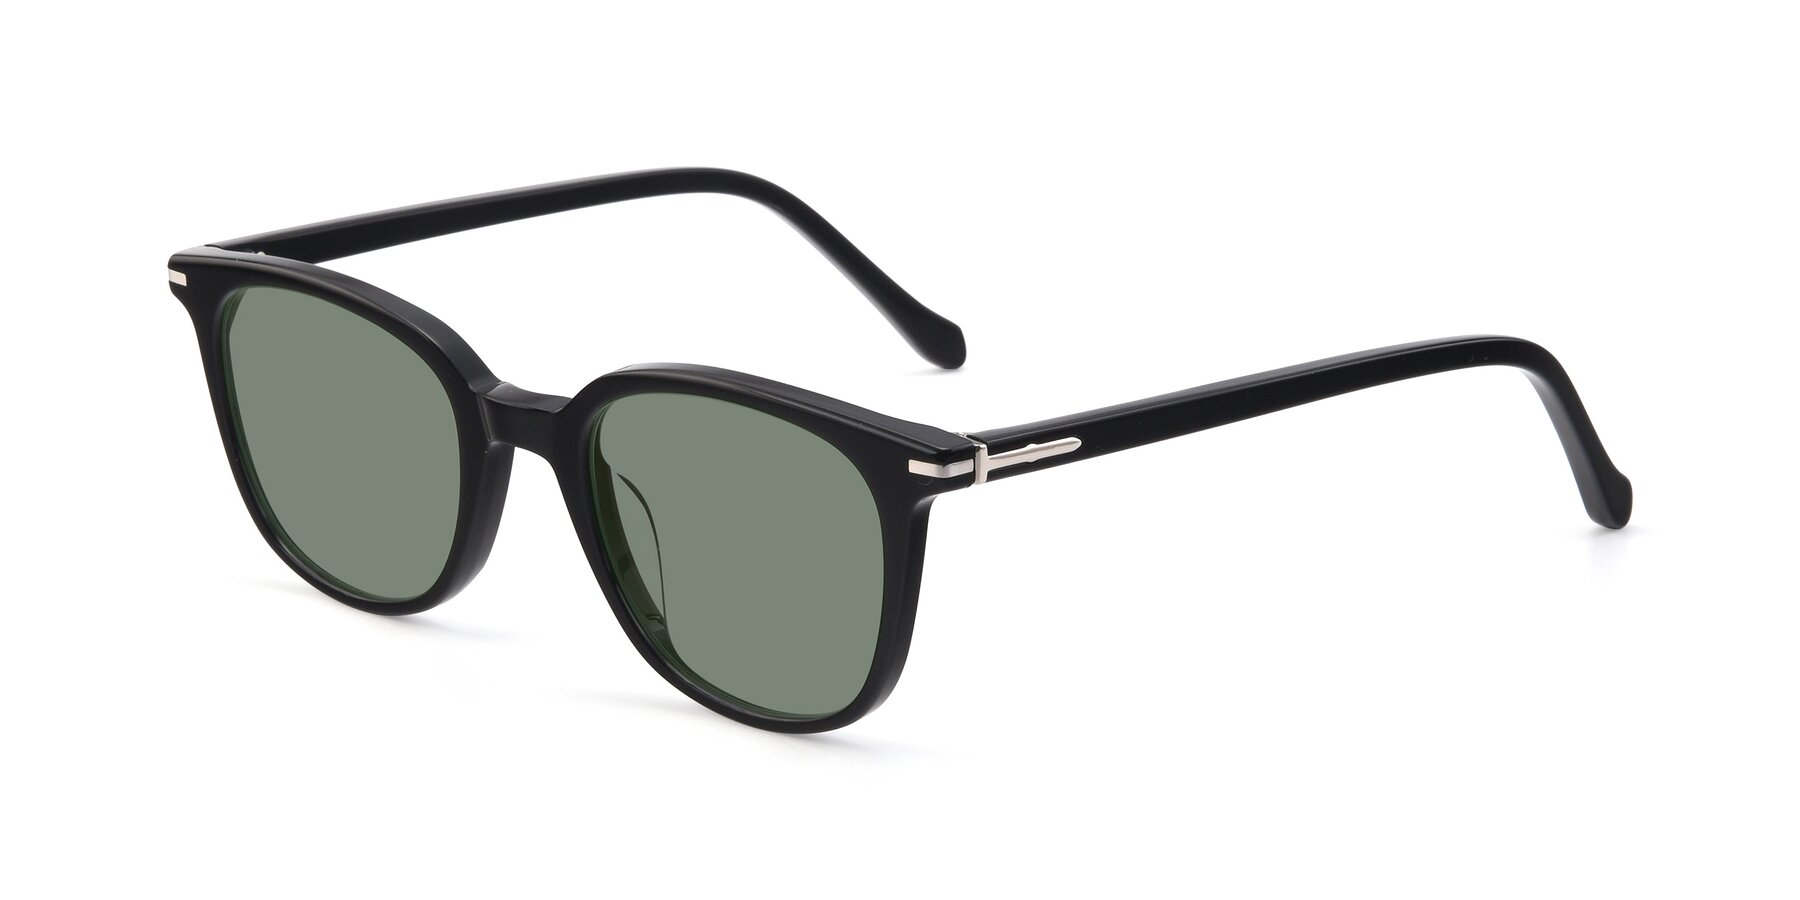 Angle of 17562 in Black with Medium Green Tinted Lenses